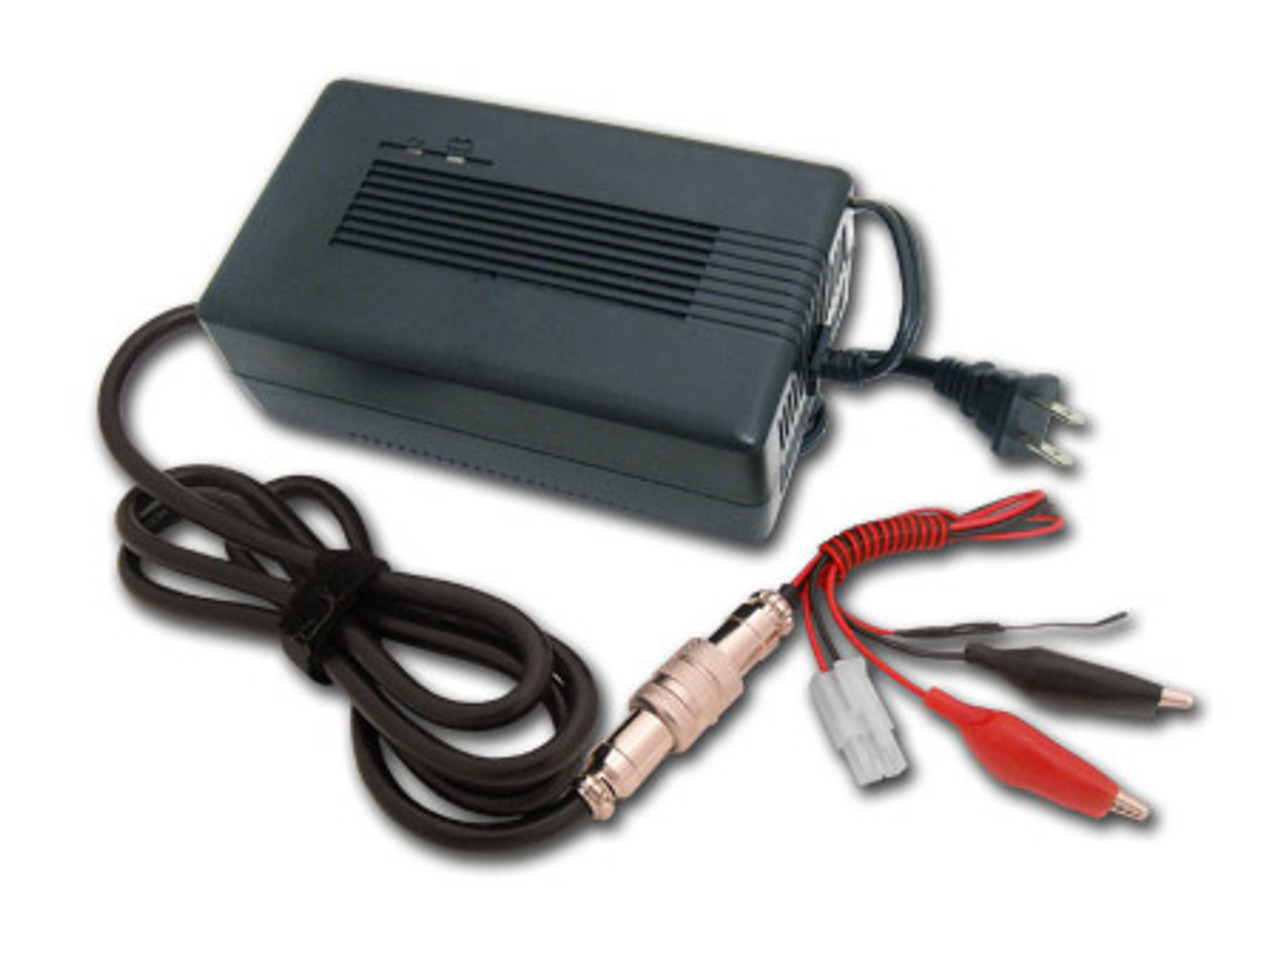 Tenergy 2A Charger for 48V NiMH/NiCd Battery Pack